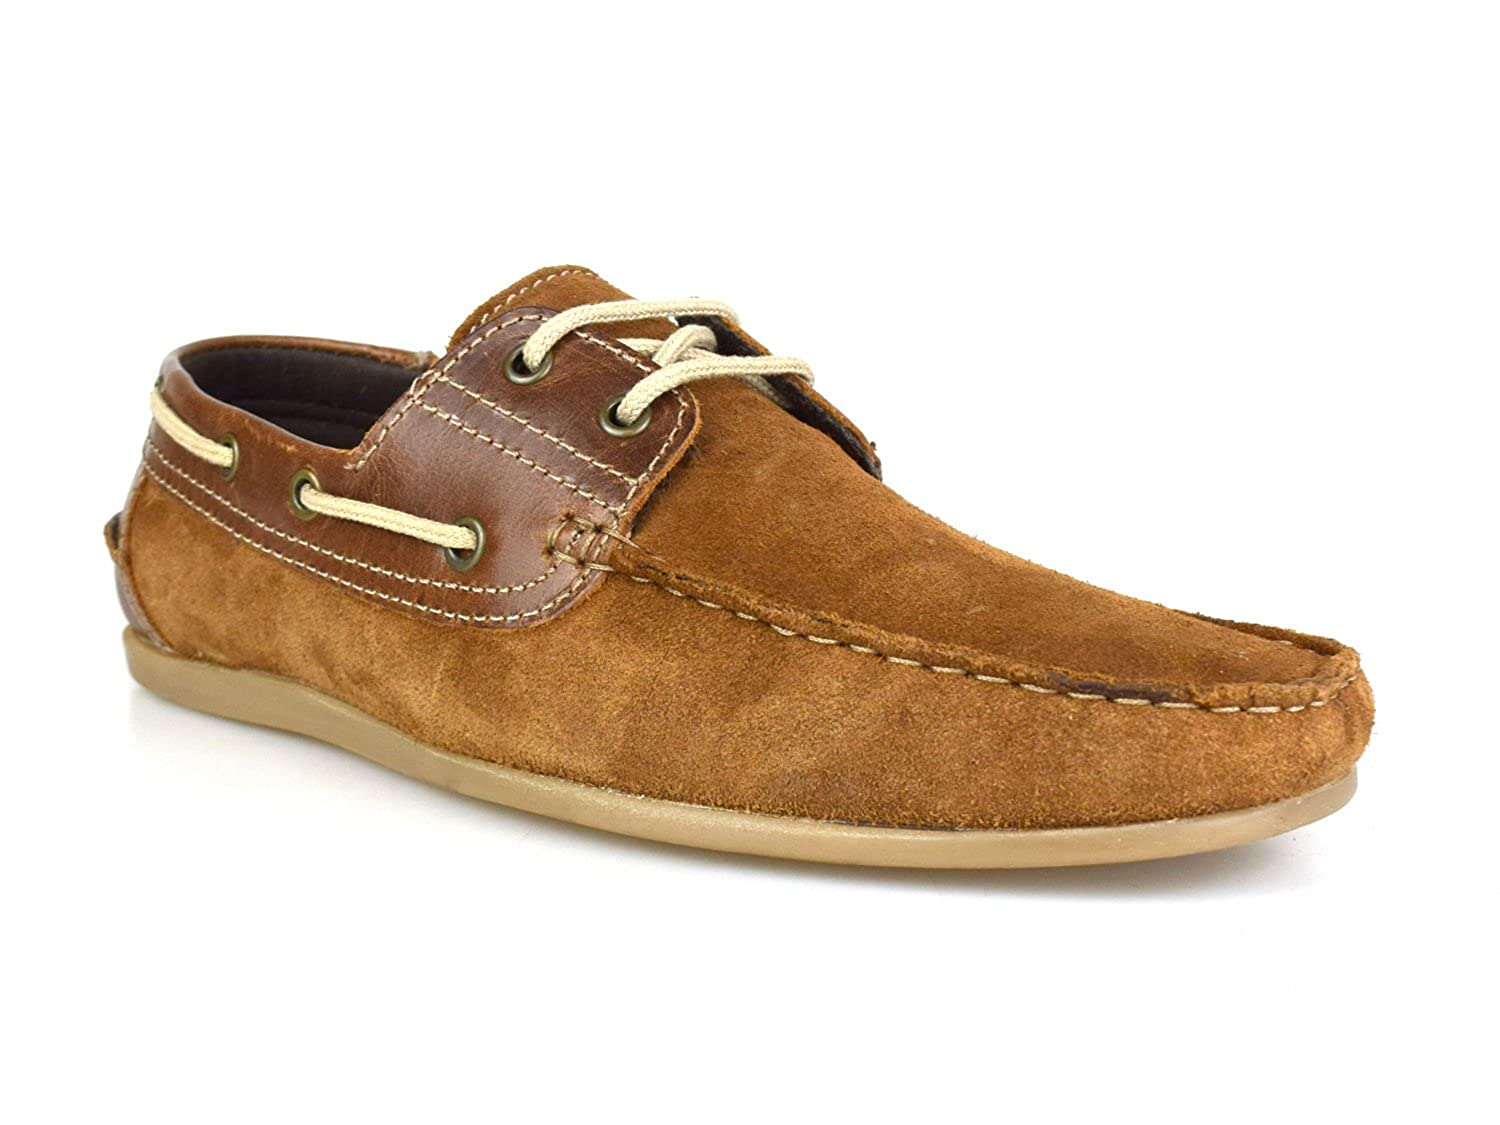 Red Tape Stratton Tan Suede Mens Casual Boat Shoes